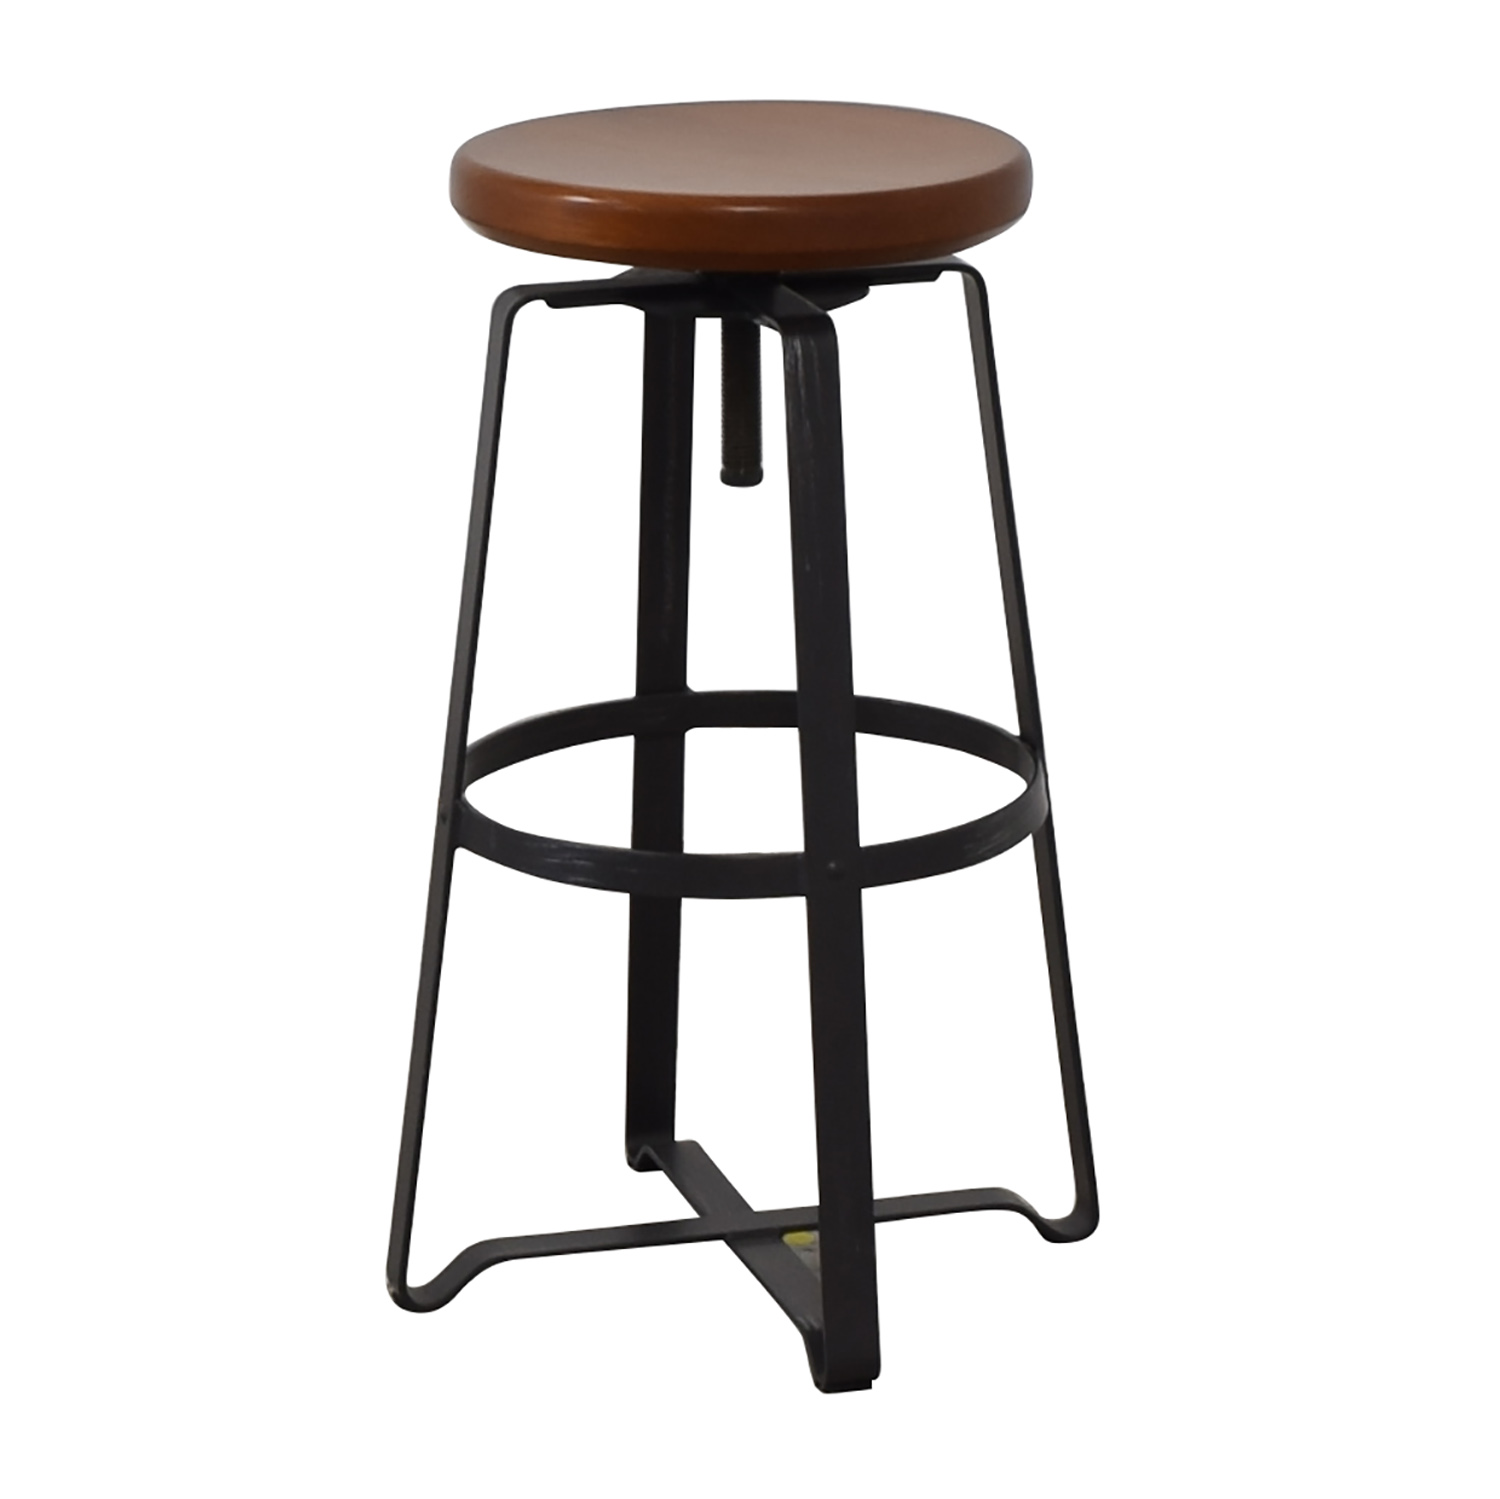 West Elm Adjustable Industrial Stool / Chairs